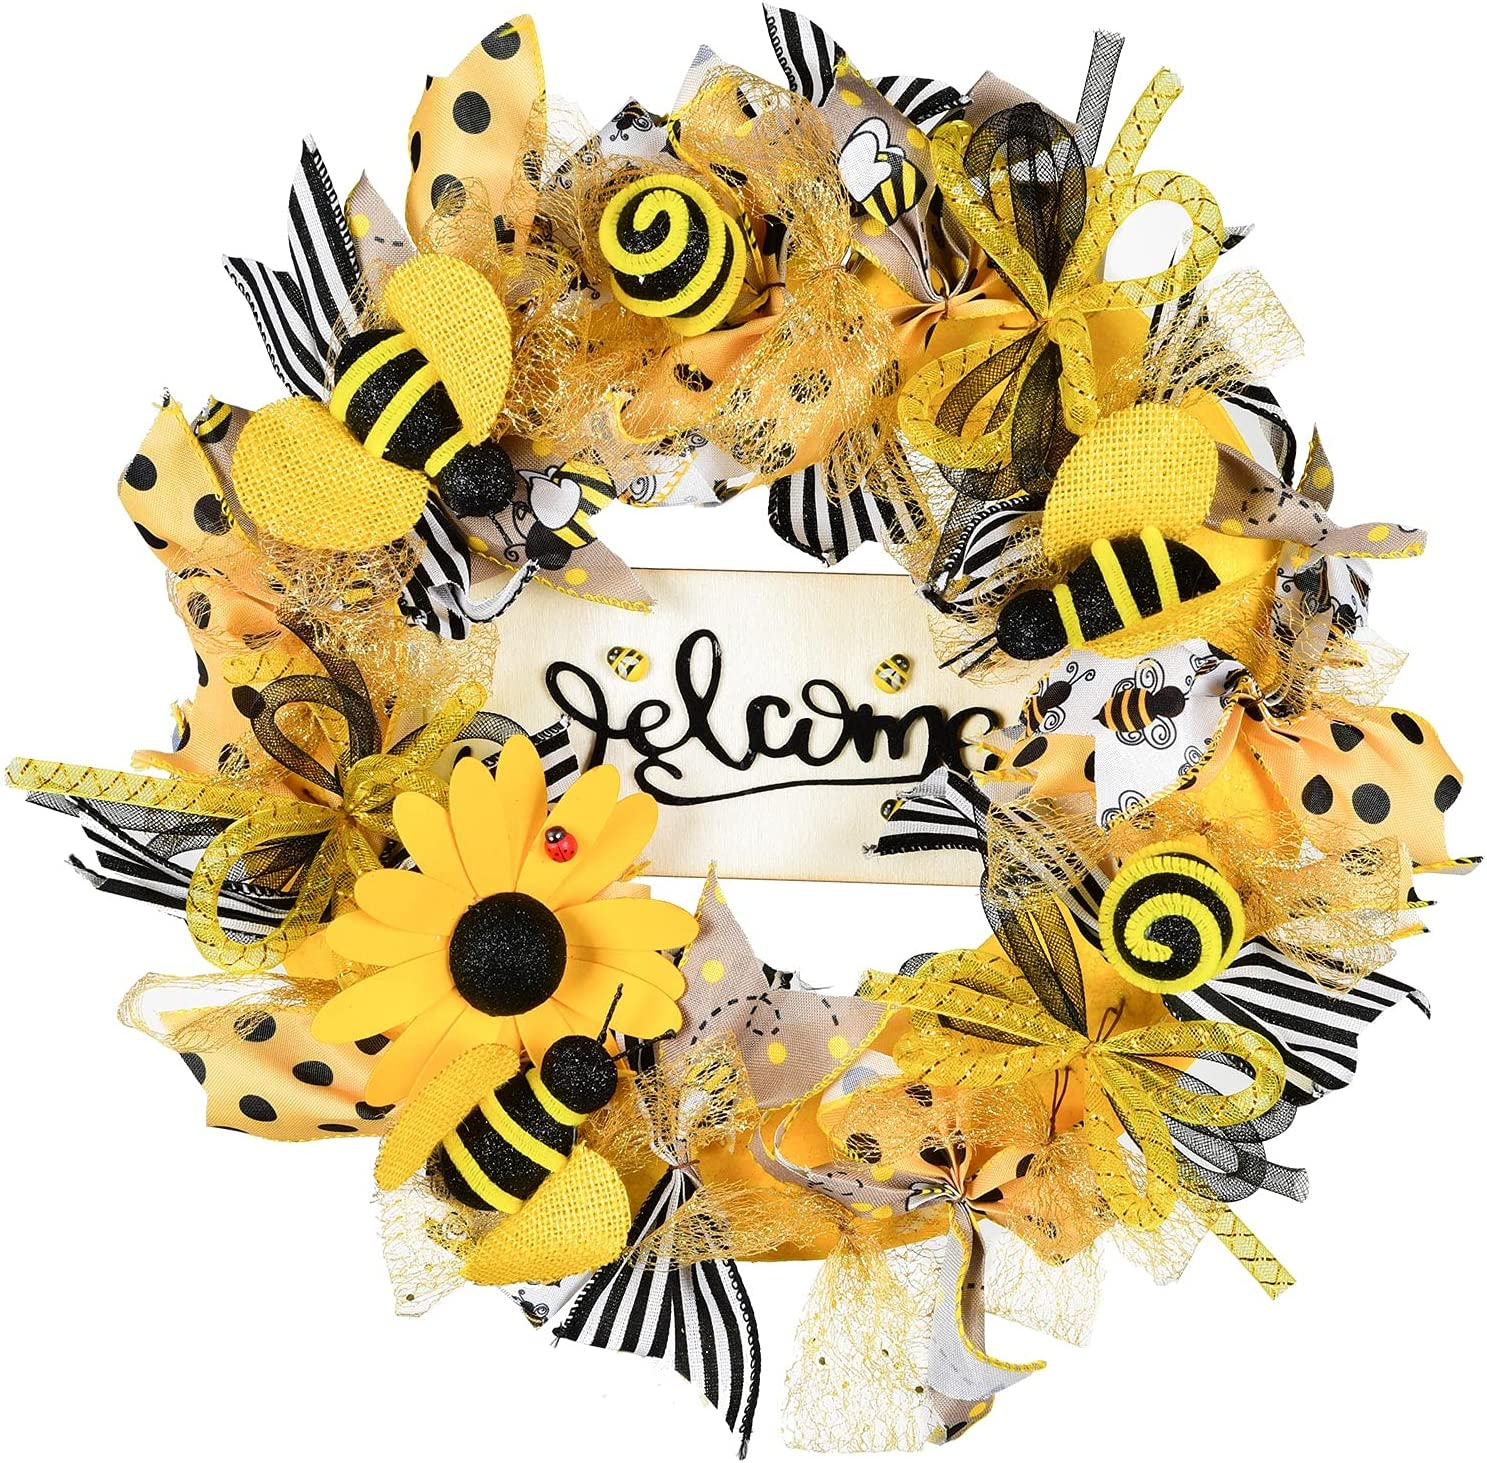 Lvydec Bee Wreath Front Door Decor, 15 Inch Yellow Wreath with Welcome Sign and Artificial Bees, Summer Wreath for Front Door Window Home Decoration